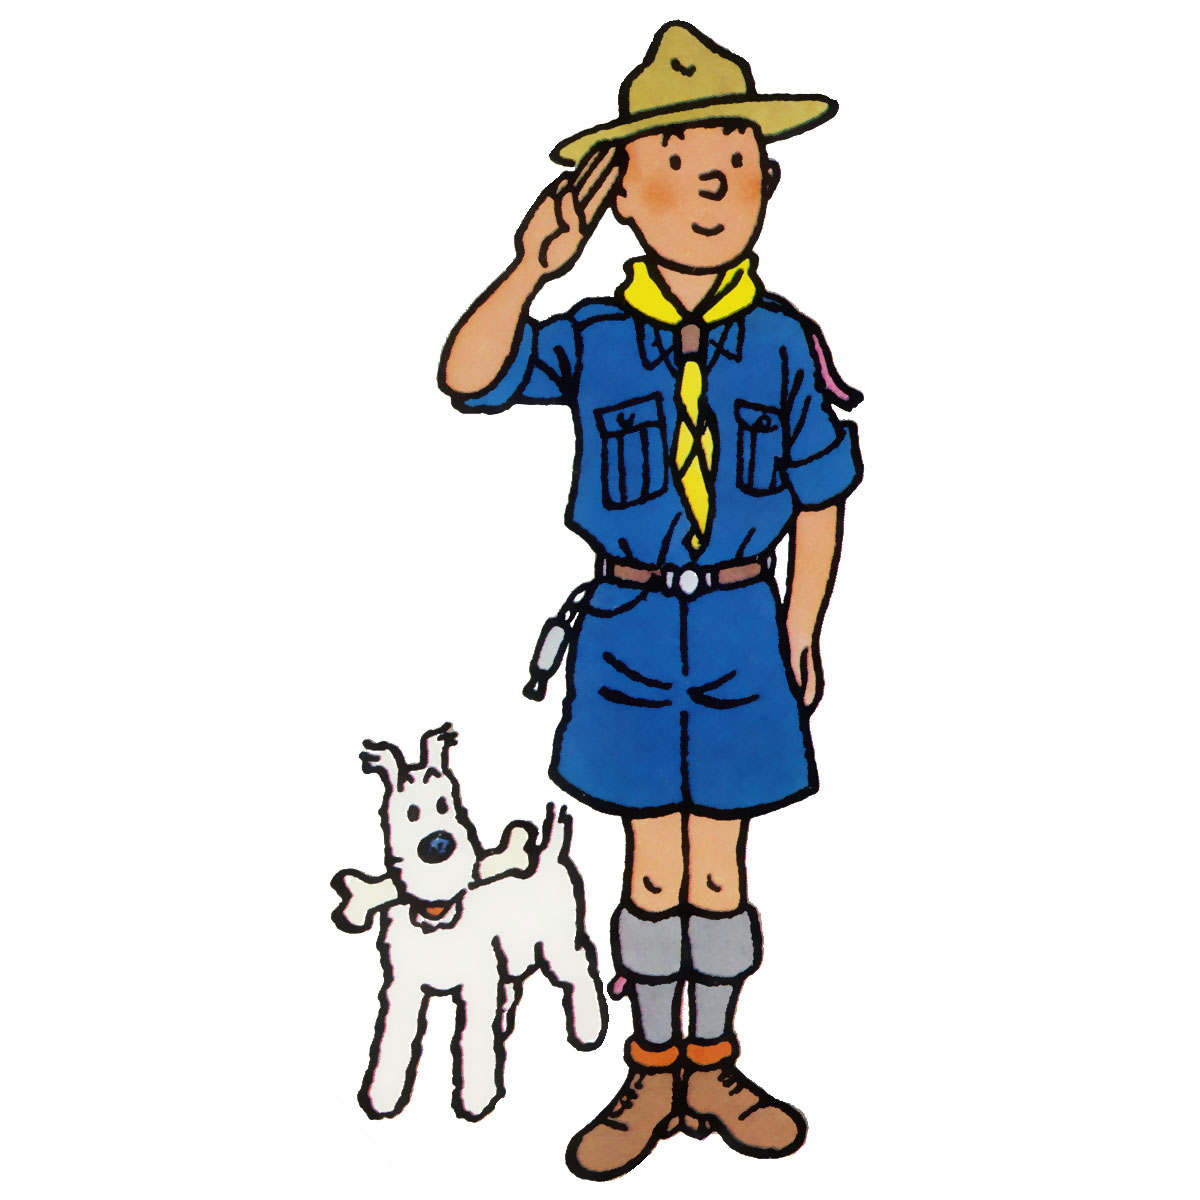 Hergé : his tribute to scouting